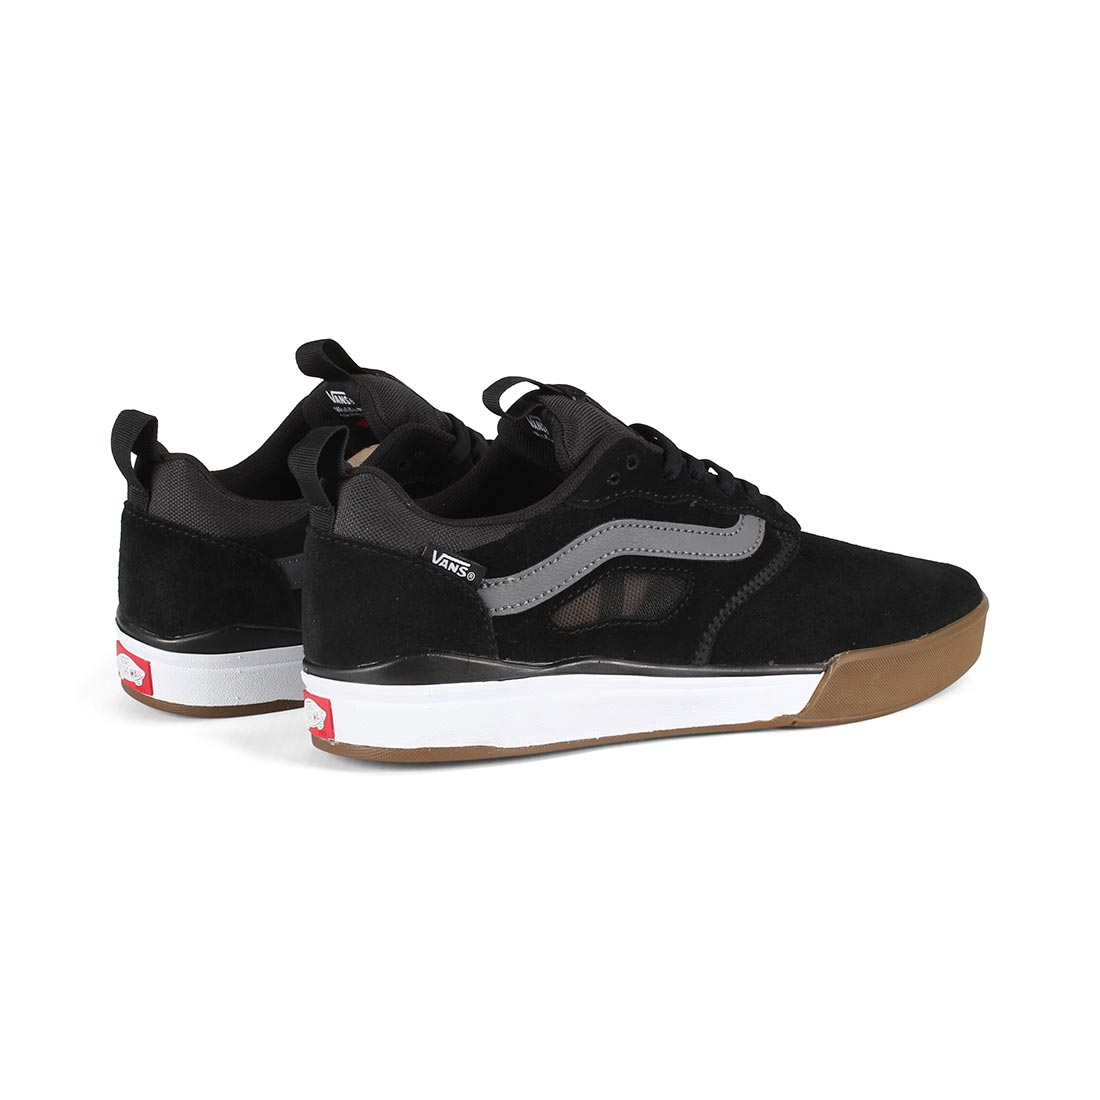 32878e12832 ULTRARANGE PRO (BLACK GUM WHITE)  buy cheap 9a29c 1de9f ... Vans-UltraRange- Pro-Skate-Shoes ...